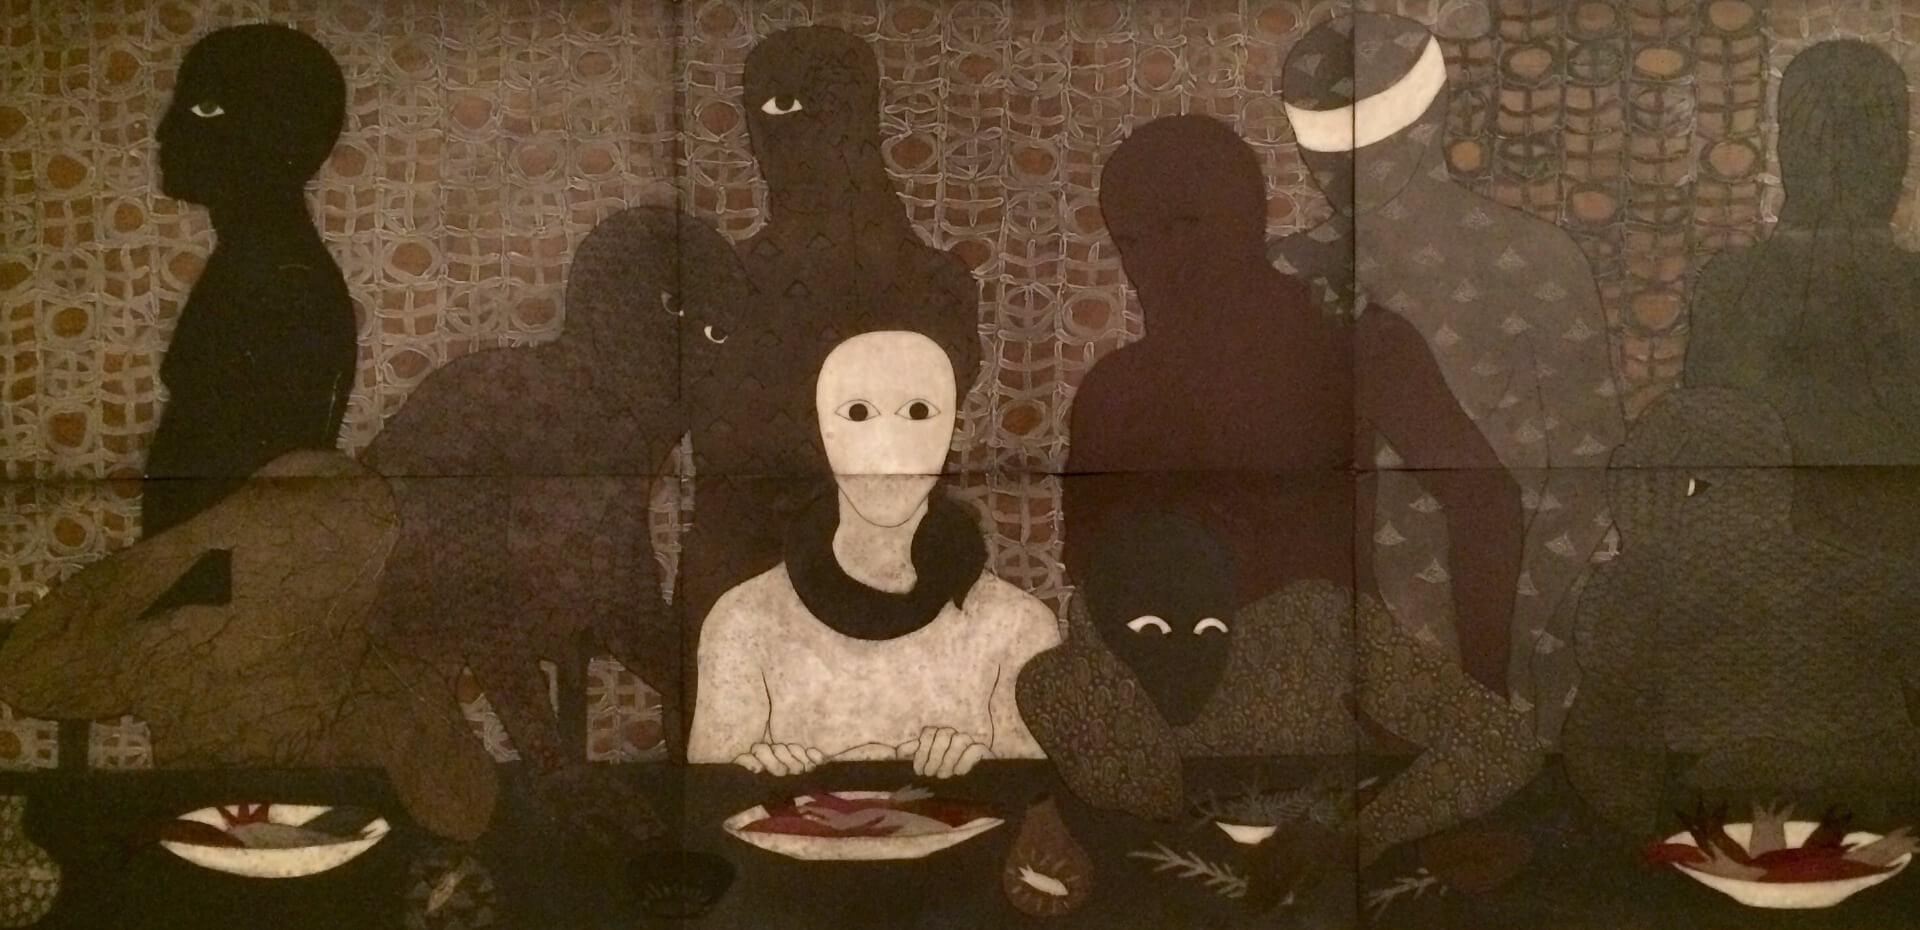 3_Belkis Ayon, The Supper, 1991